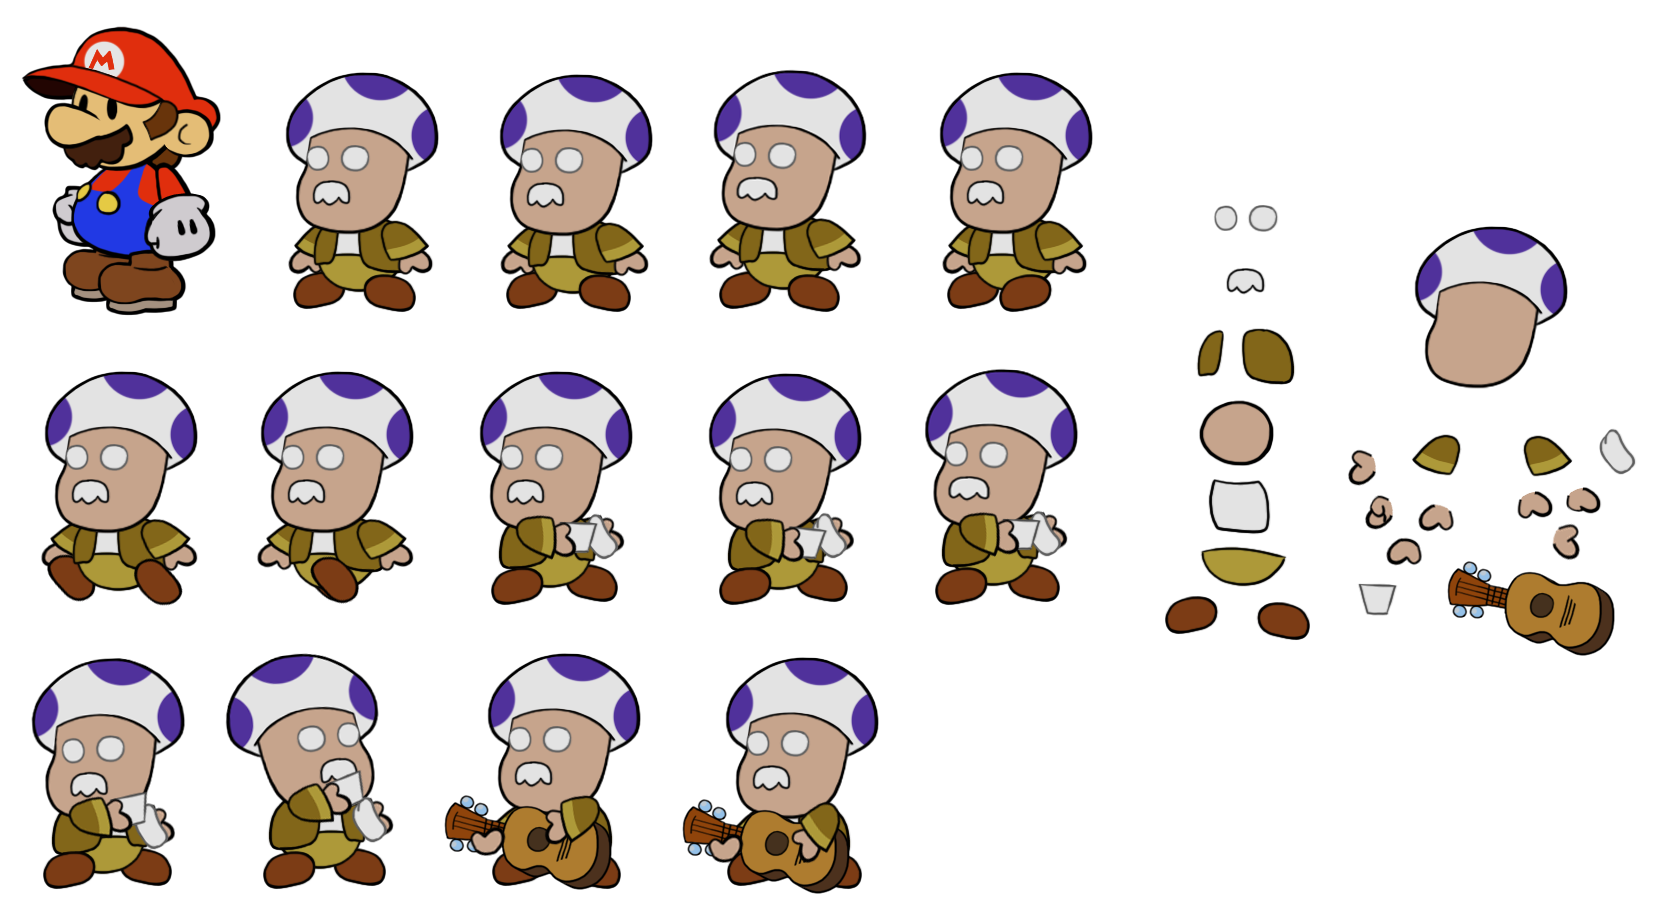 Bartender (Paper Mario Style)